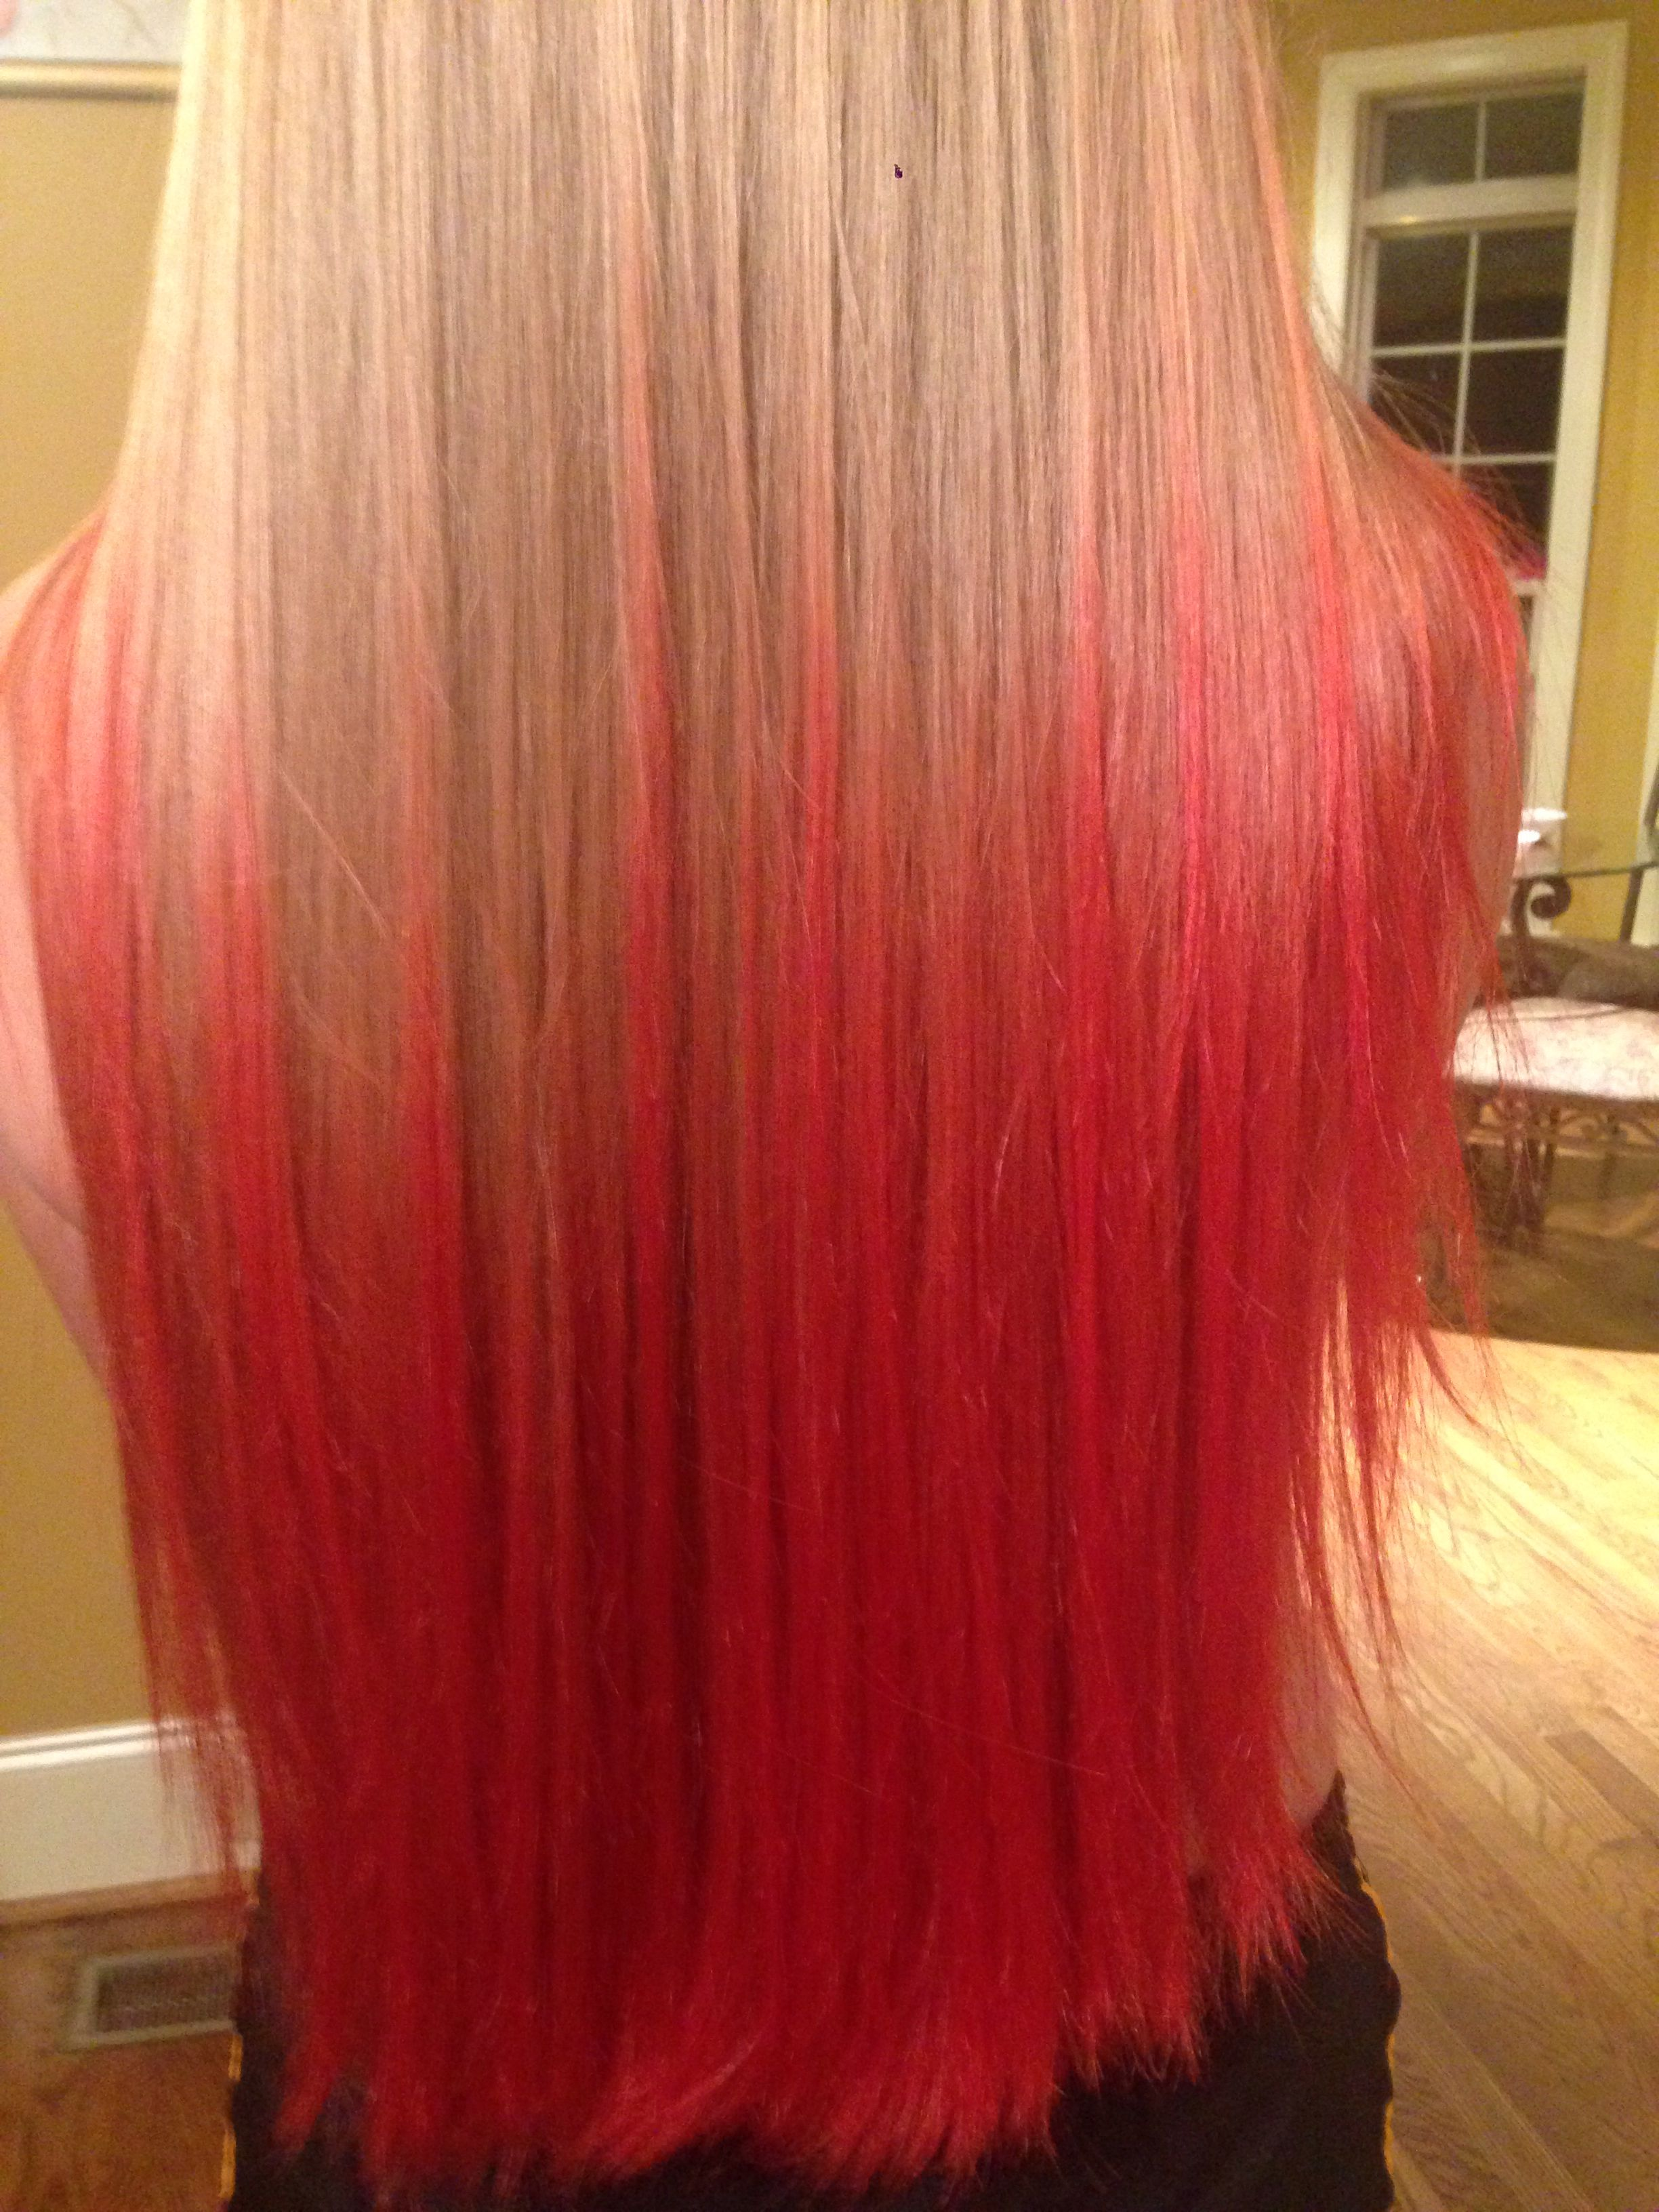 Kool Aid Dip Dyed Hair Cherry Strawberry And Pink Lemonade